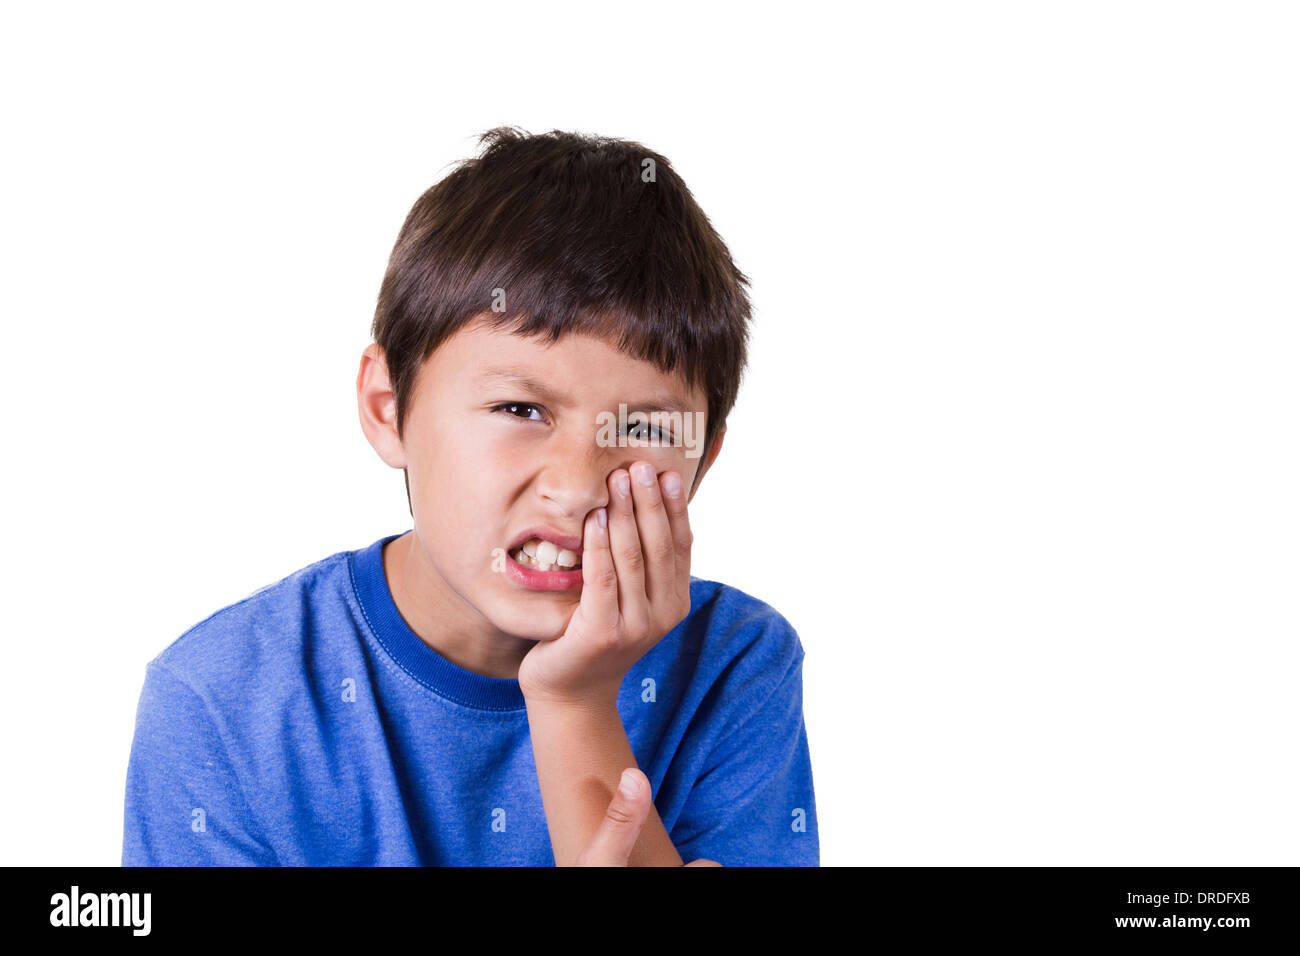 Young boy with toothache - on white background - Stock Image